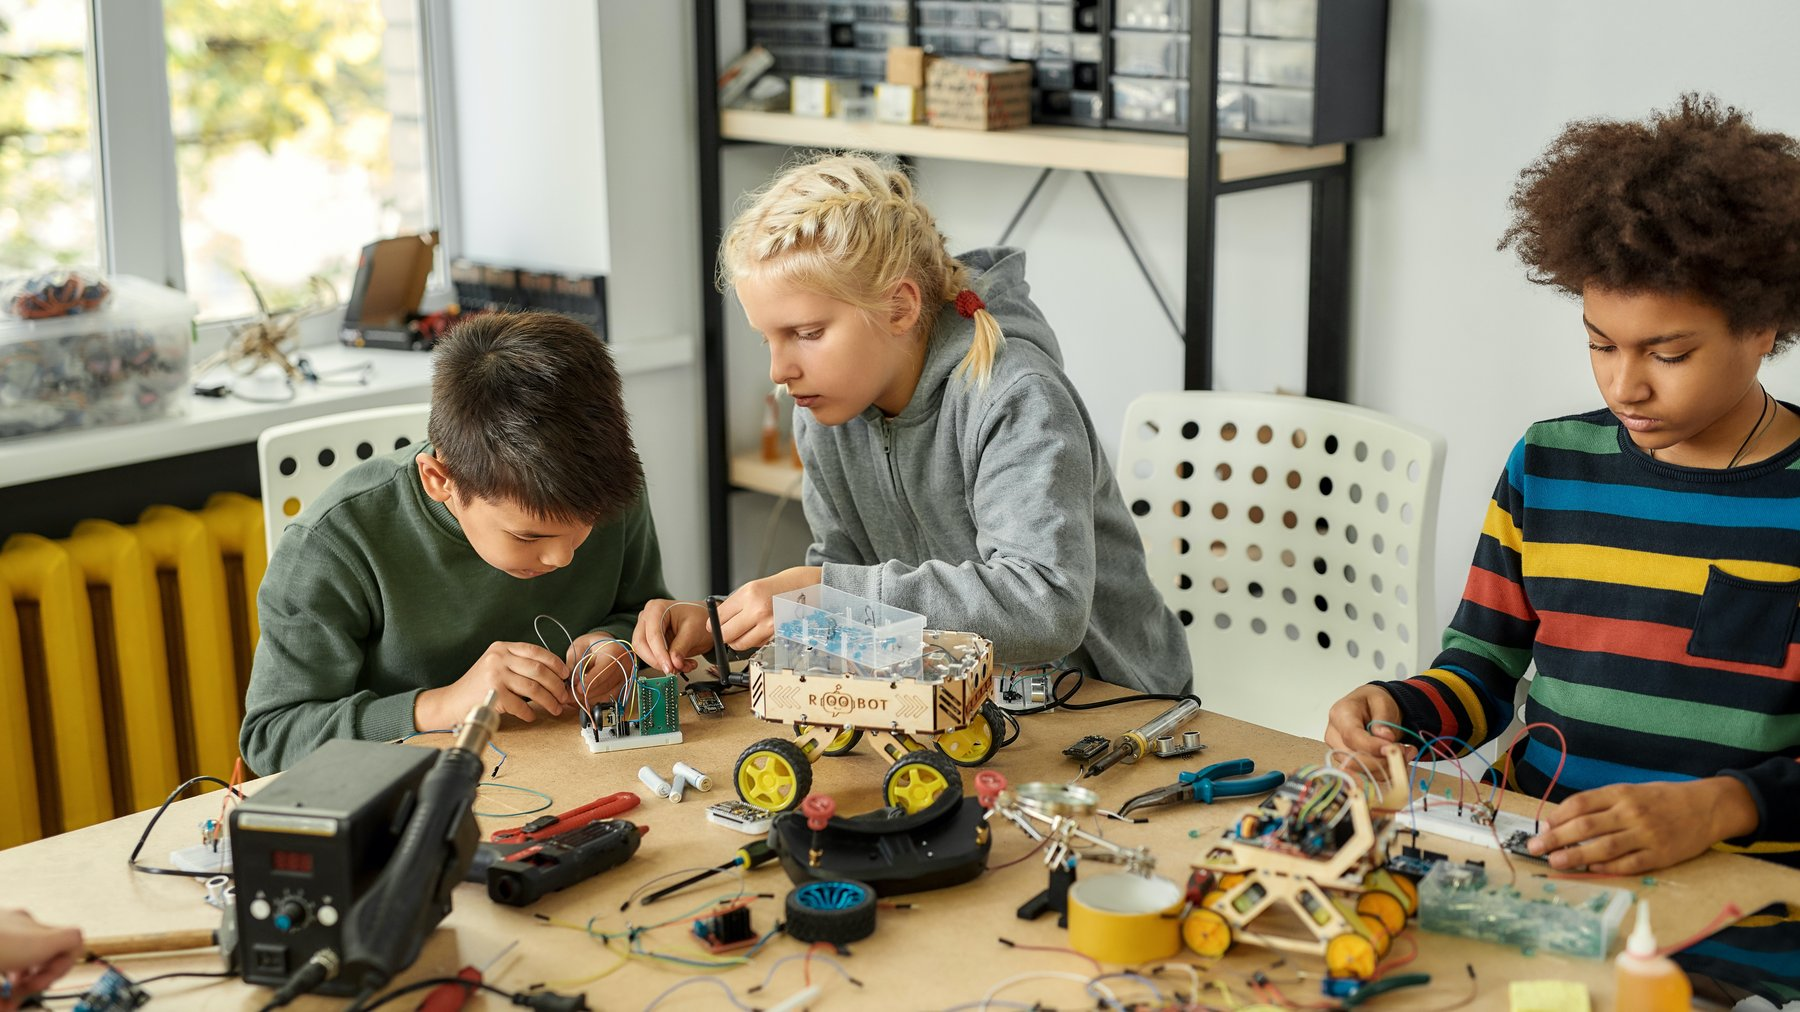 Three kids creating STEM projects together.